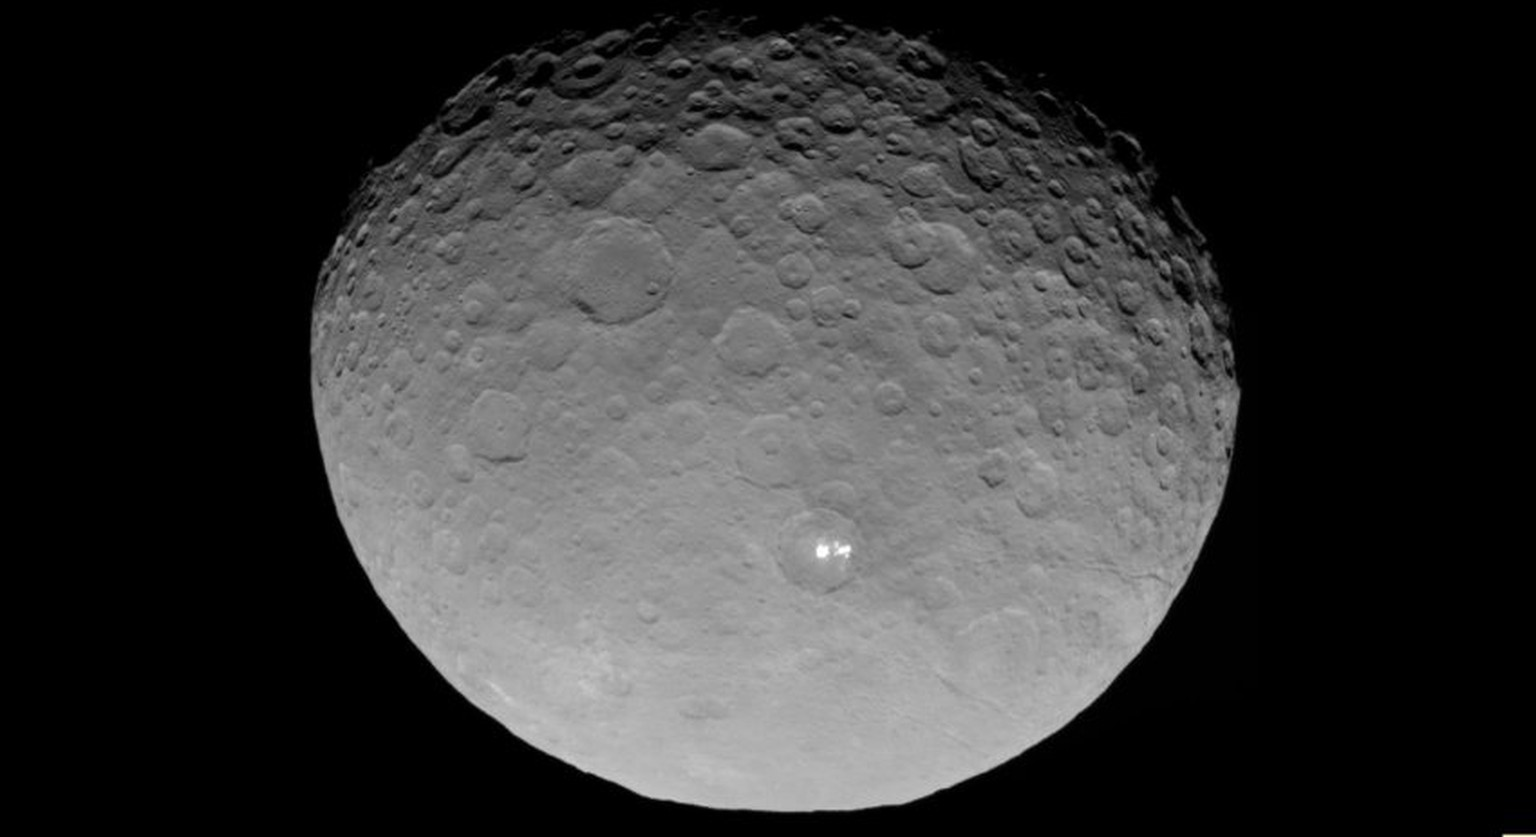 Full image and caption	  The mysterious bright spots on the dwarf planet Ceres are better resolved in a new sequence of images taken by NASA's Dawn spacecraft on May 3 and 4, 2015. The images were taken from a distance of 8,400 miles (13,600 kilometers).